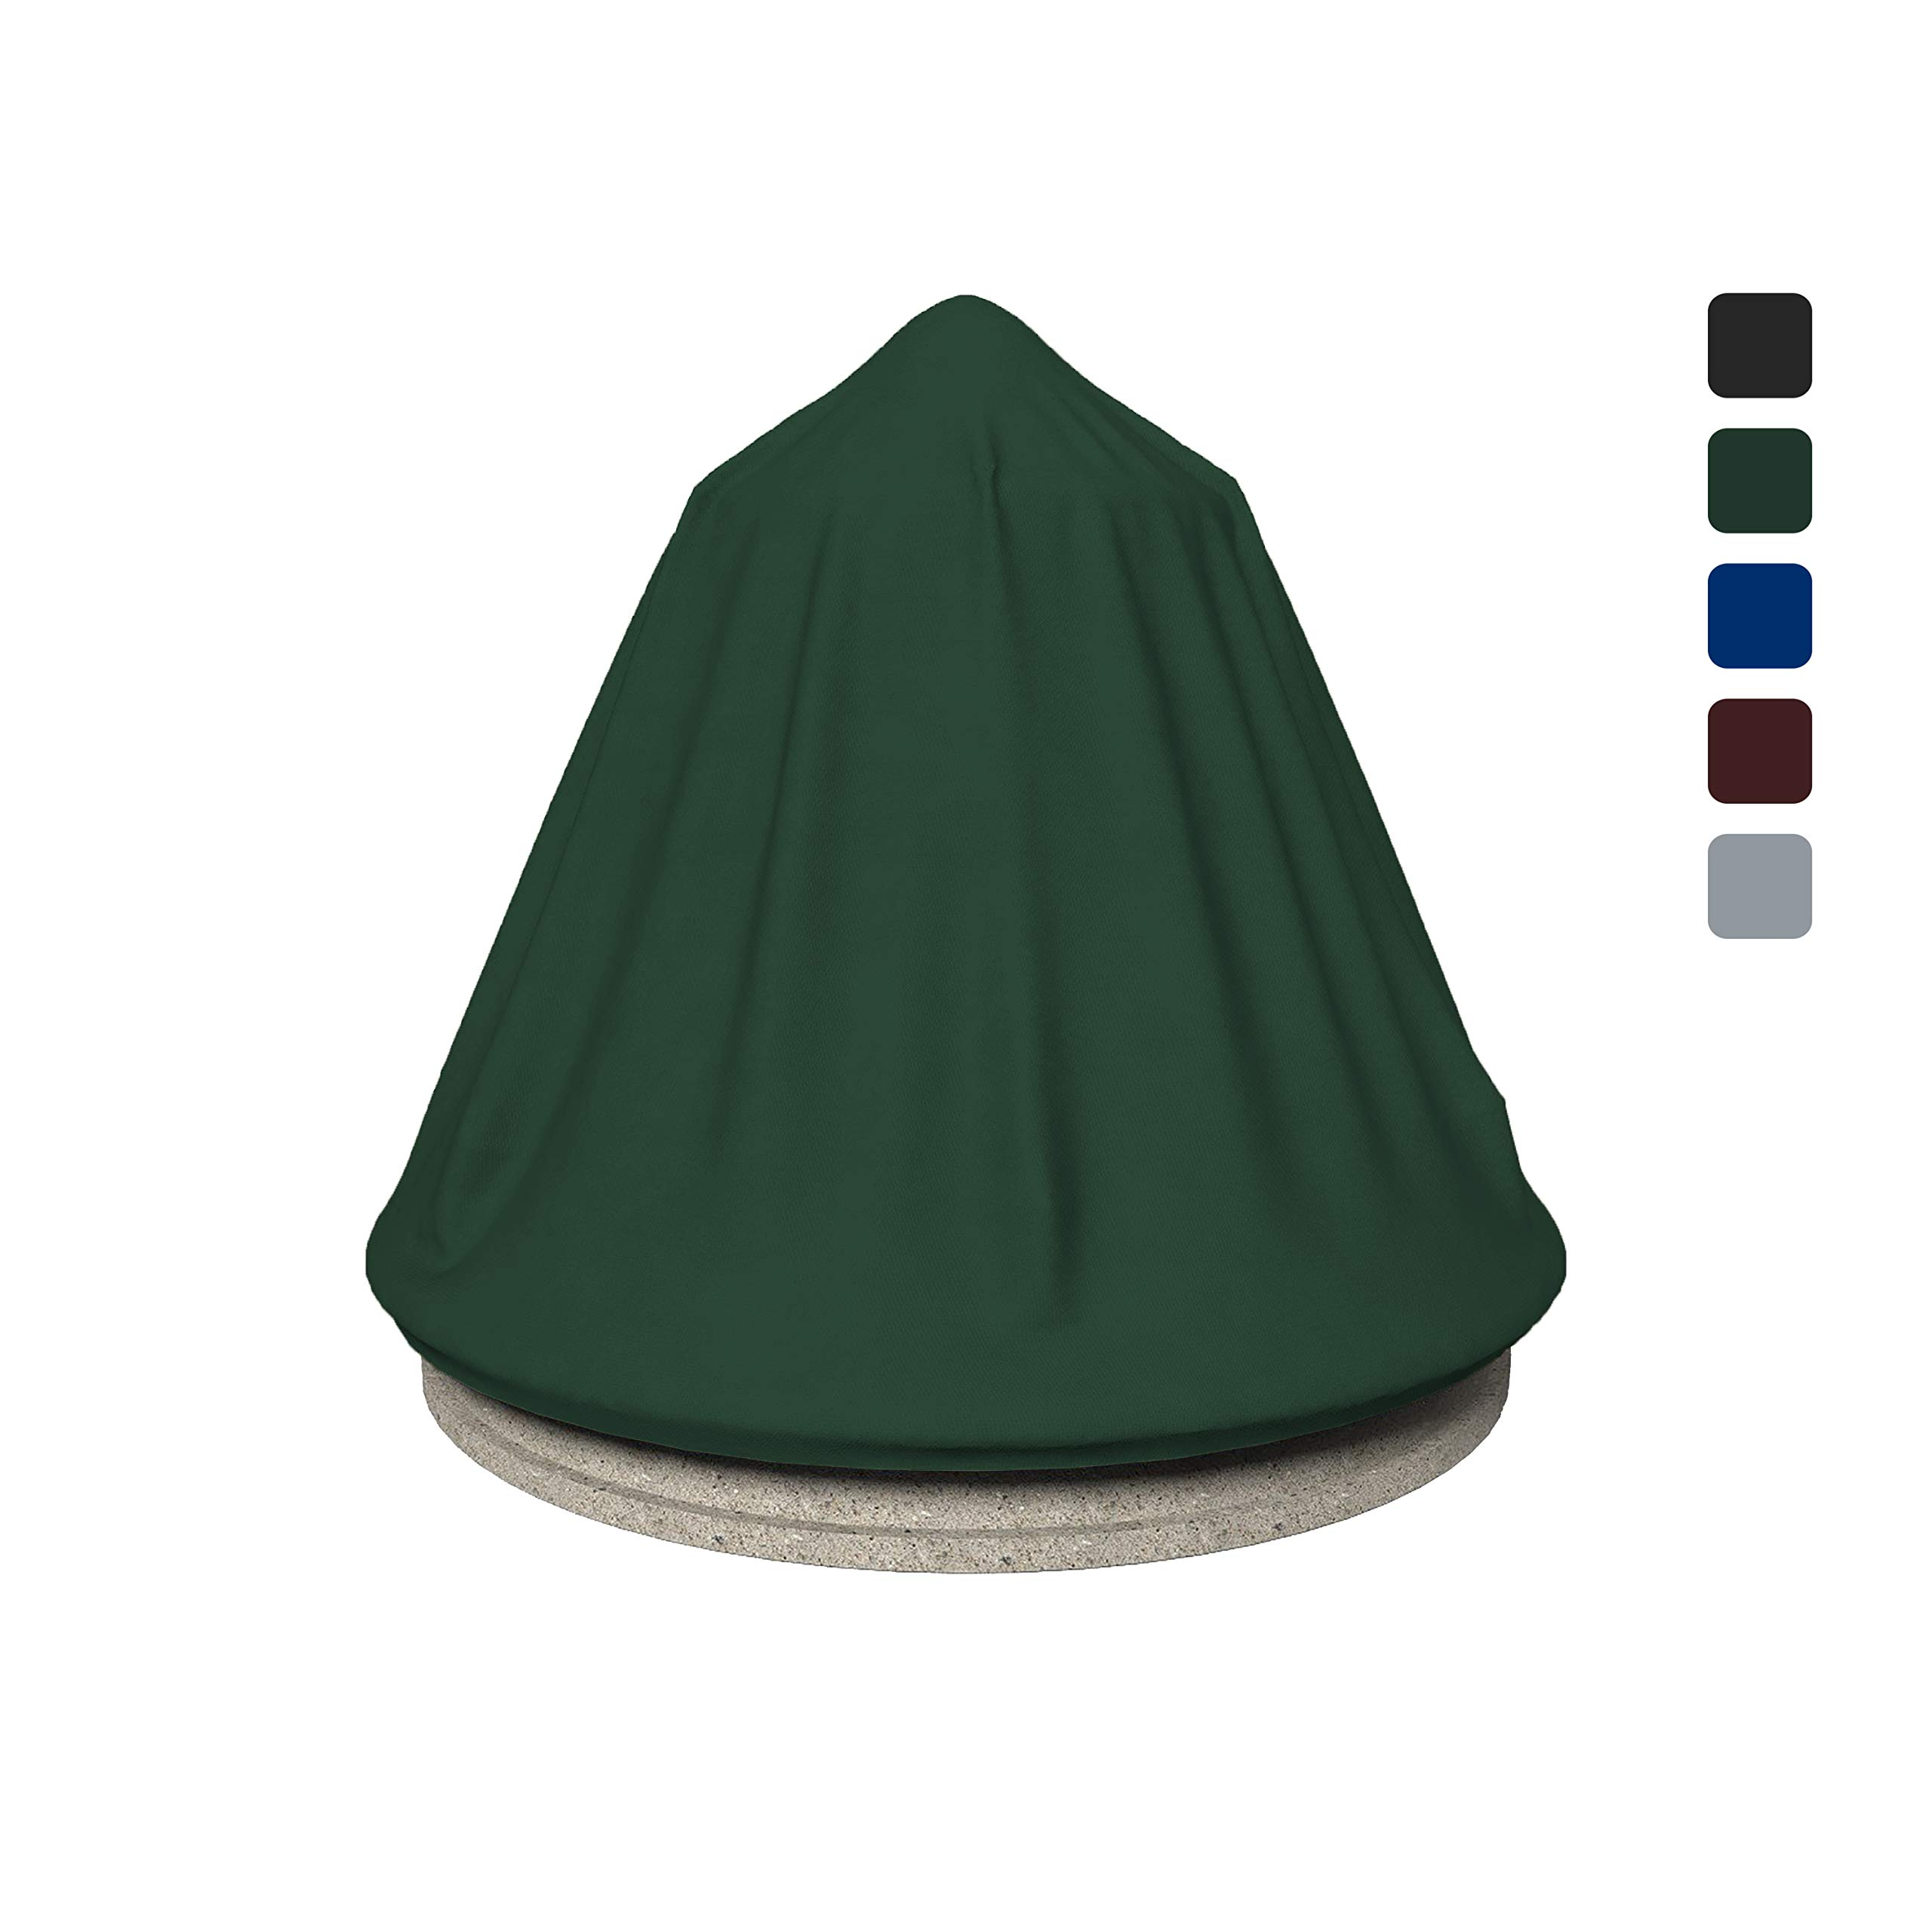 COVERS & ALL Fountain Cover 18 Oz Waterproof - Customize Cover with Any Size - 100% UV & Weather Resistant Water Fountain Cover with Air Pocket and Elastic with Snug Fit (36'' Dia x 42'' H, Green)